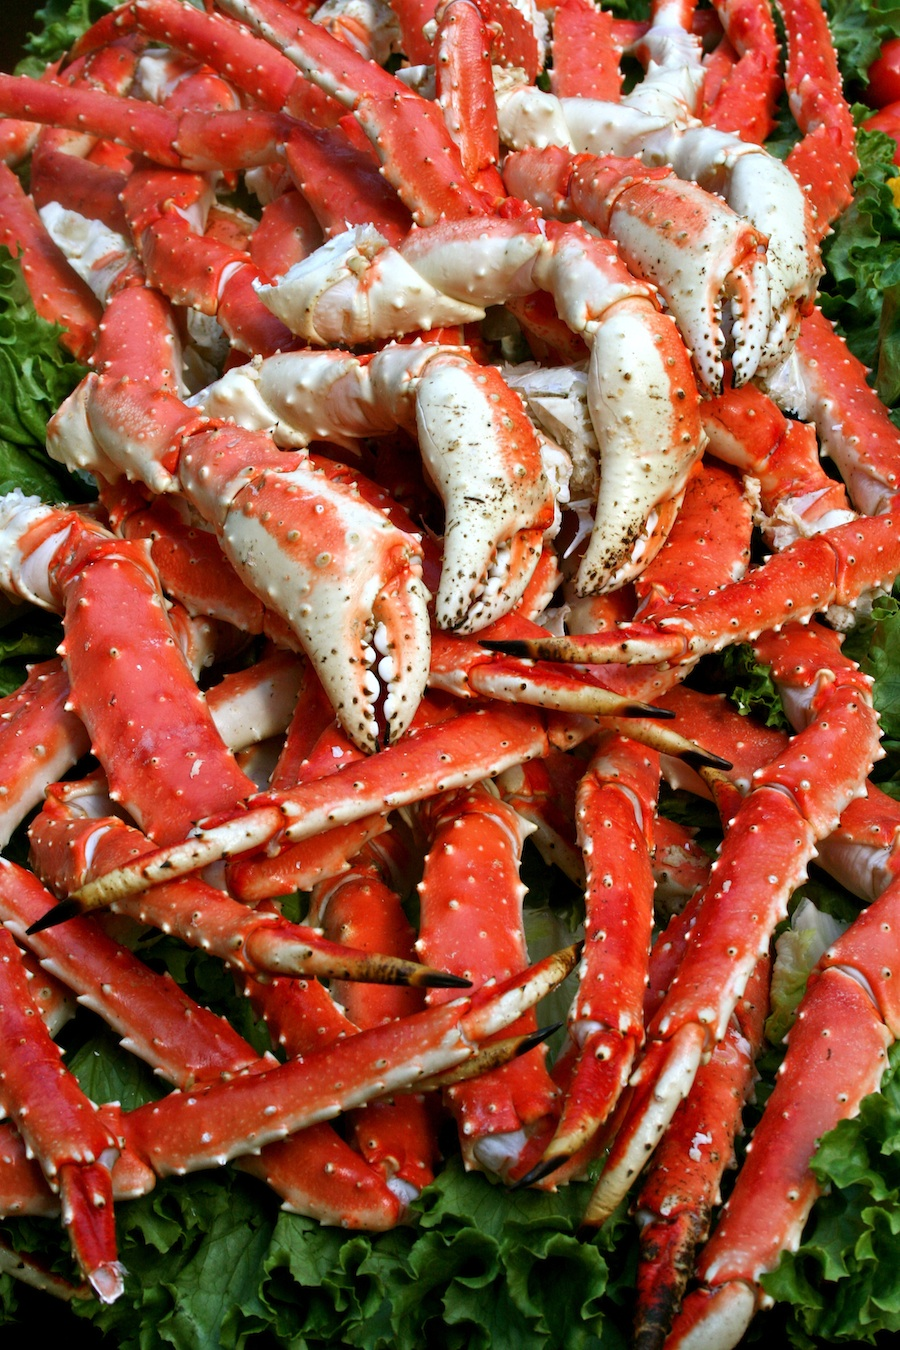 Giant Alaskan King Crab Legs by the pound  Giant Alaskan King Crab Legs